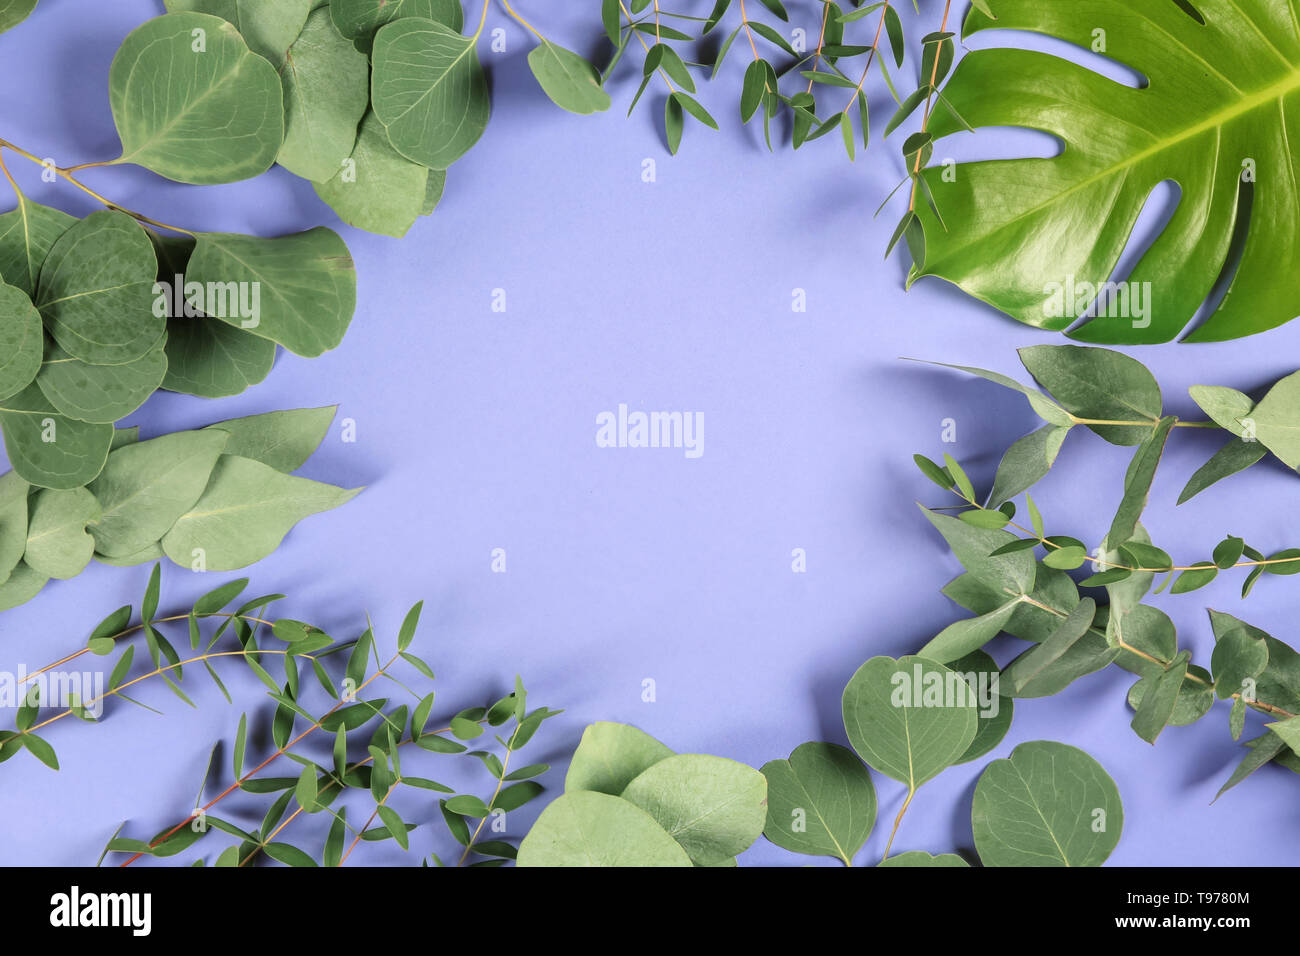 Frame made of green tropical leaves on color background - Stock Image